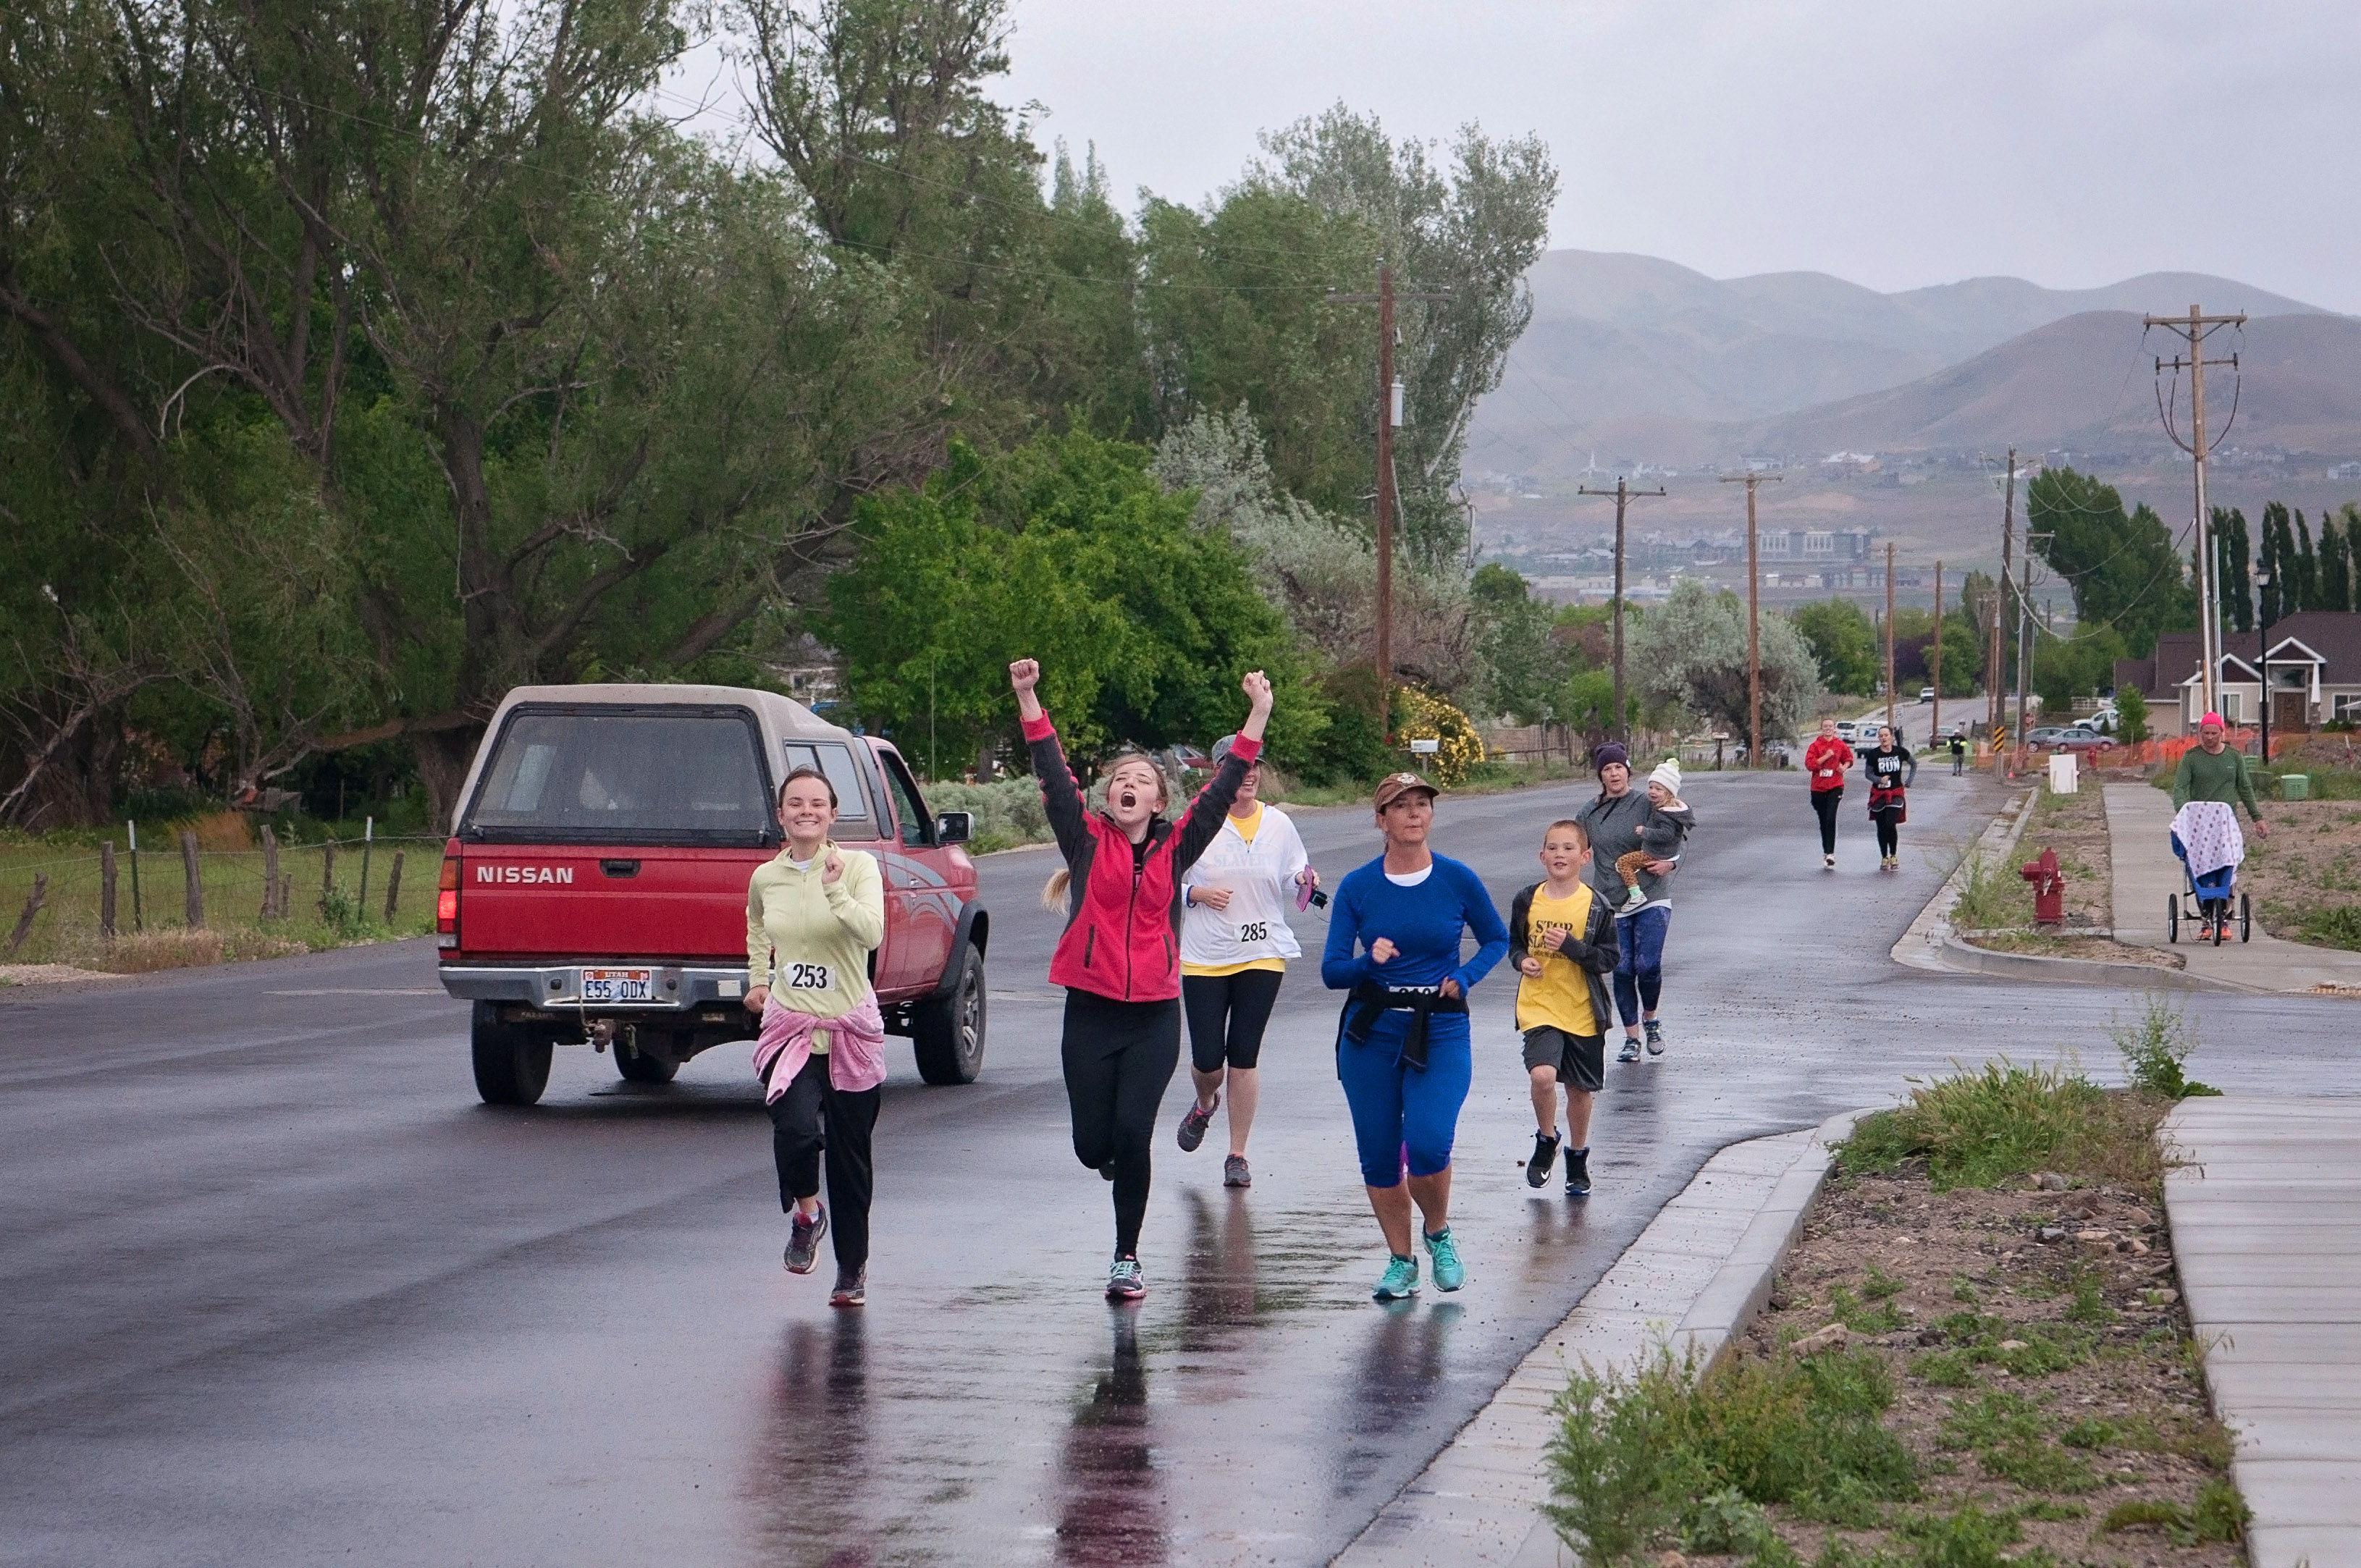 Rescue Run-63 | How Much is a 5K by popular Utah lifestyle blogger, Kara Metta: image of a group of people running in the Rescue Run marathon.